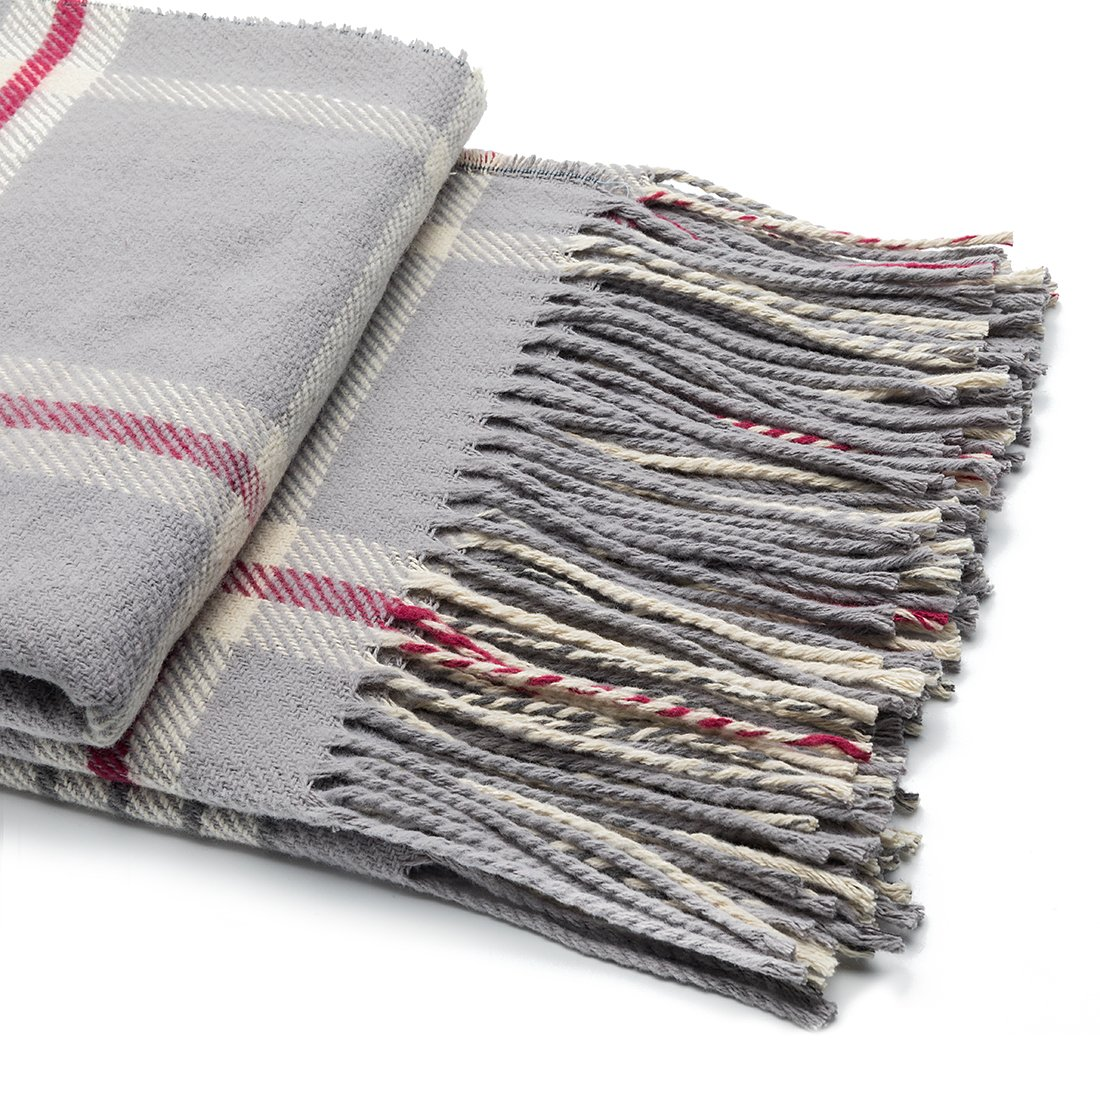 SPENCER&WHITNEY Lightweight Polyester Blanket All Season Use 100 Polyester Fiber Blanket Plush Soft Throw Blanket